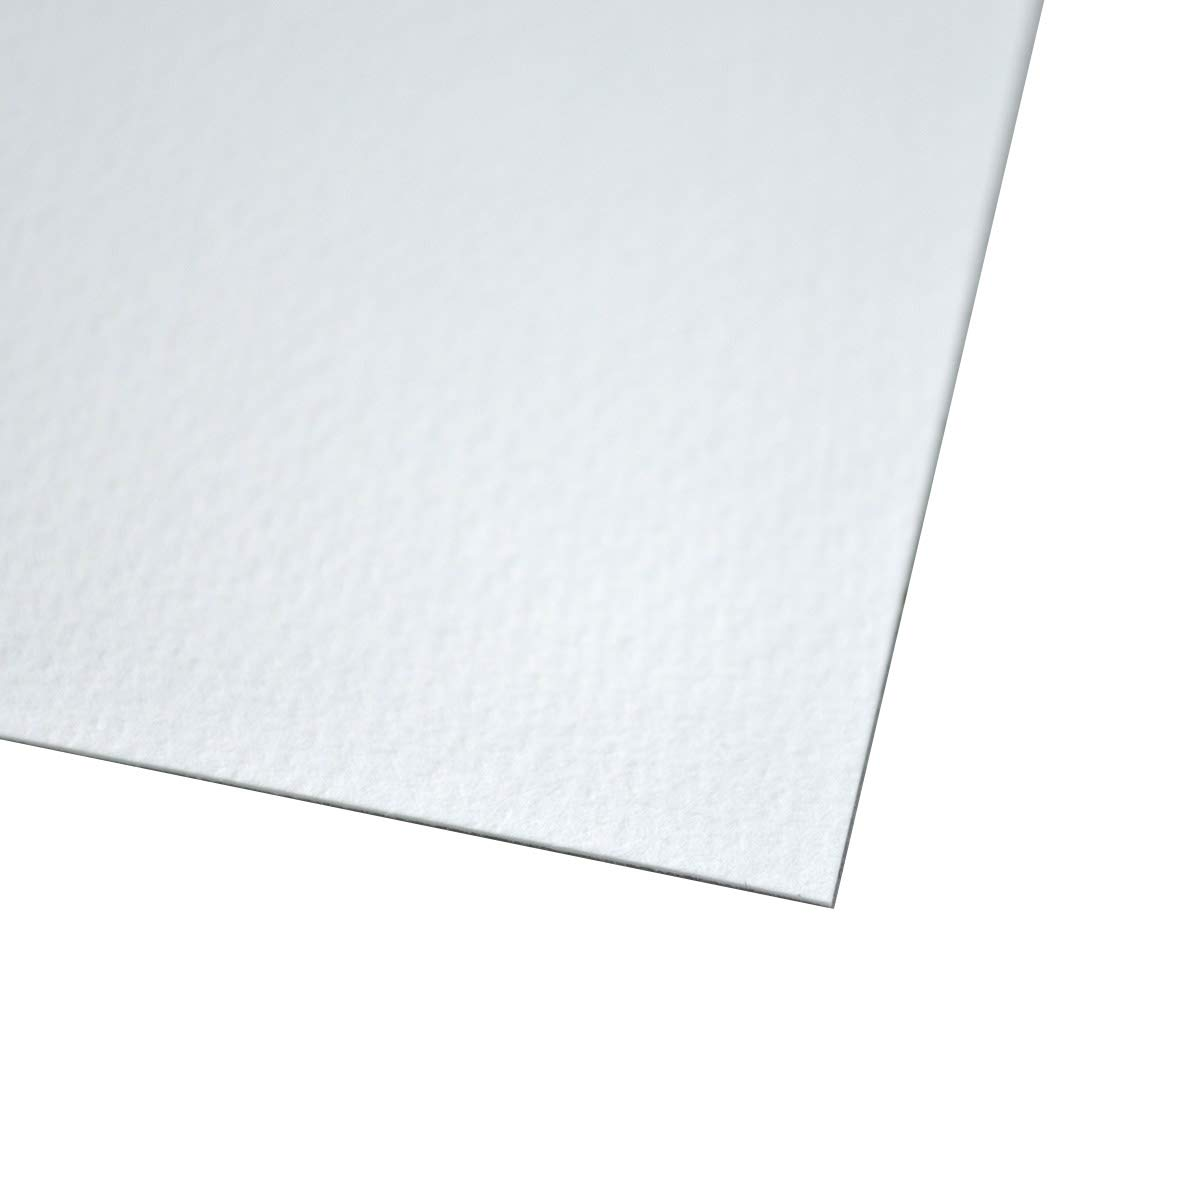 6-inch x 9-inch 50 Sheet Pack